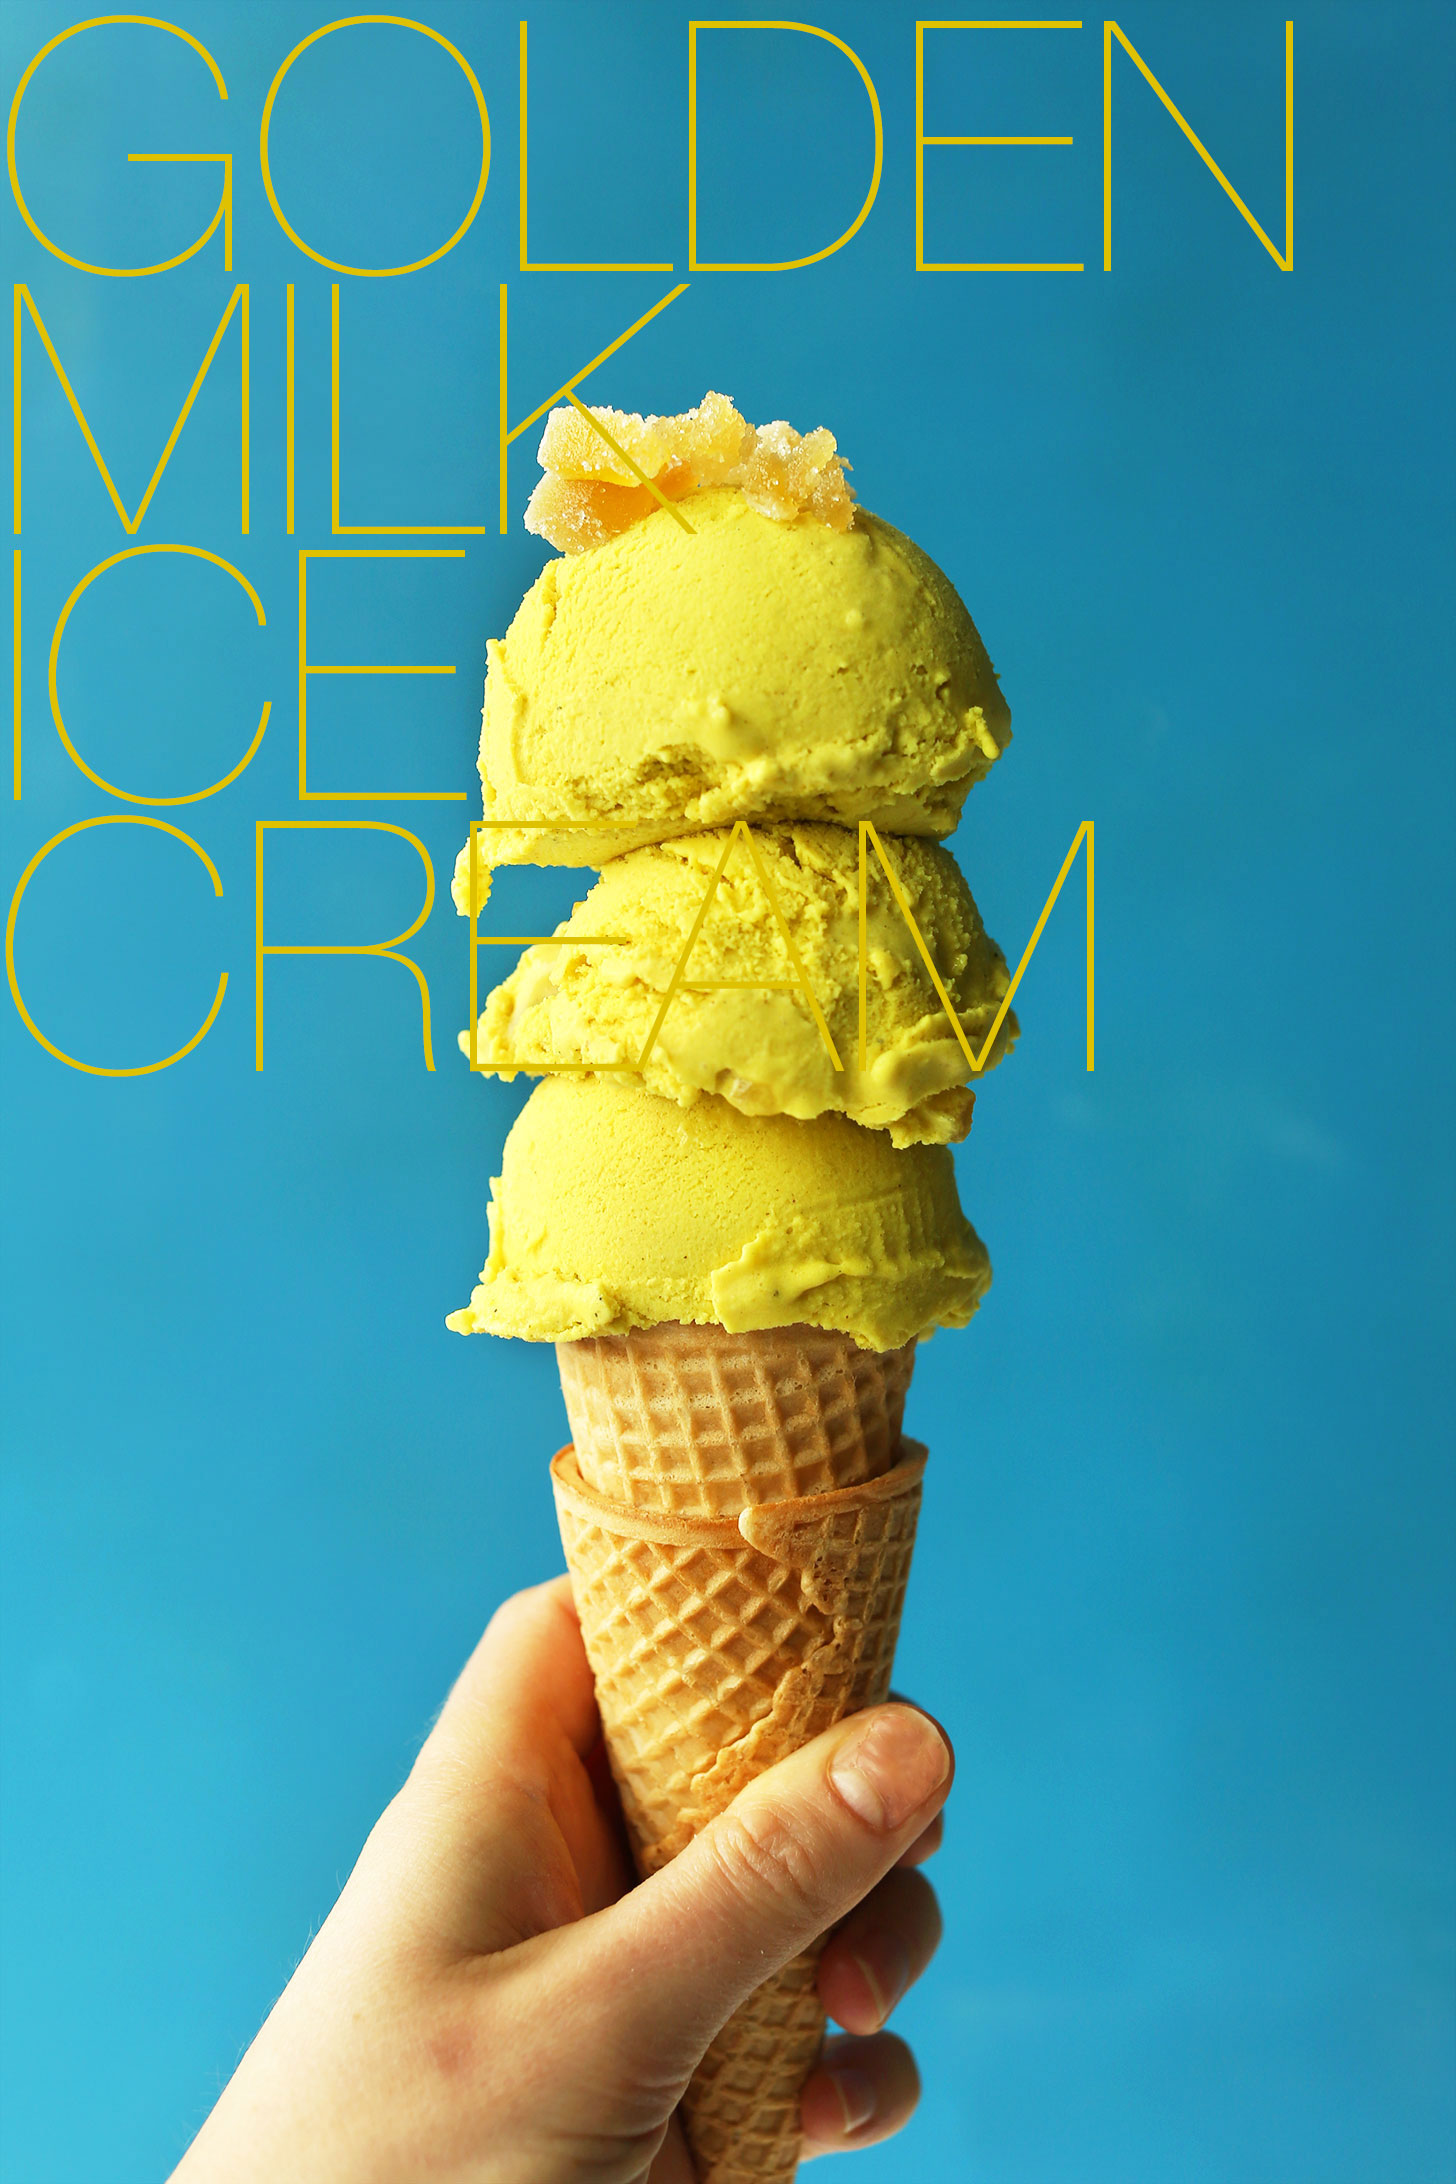 Golden milk ice cream minimalist baker recipes sugar cone topped with scoops of our homemade vegan golden milk ice cream ccuart Image collections